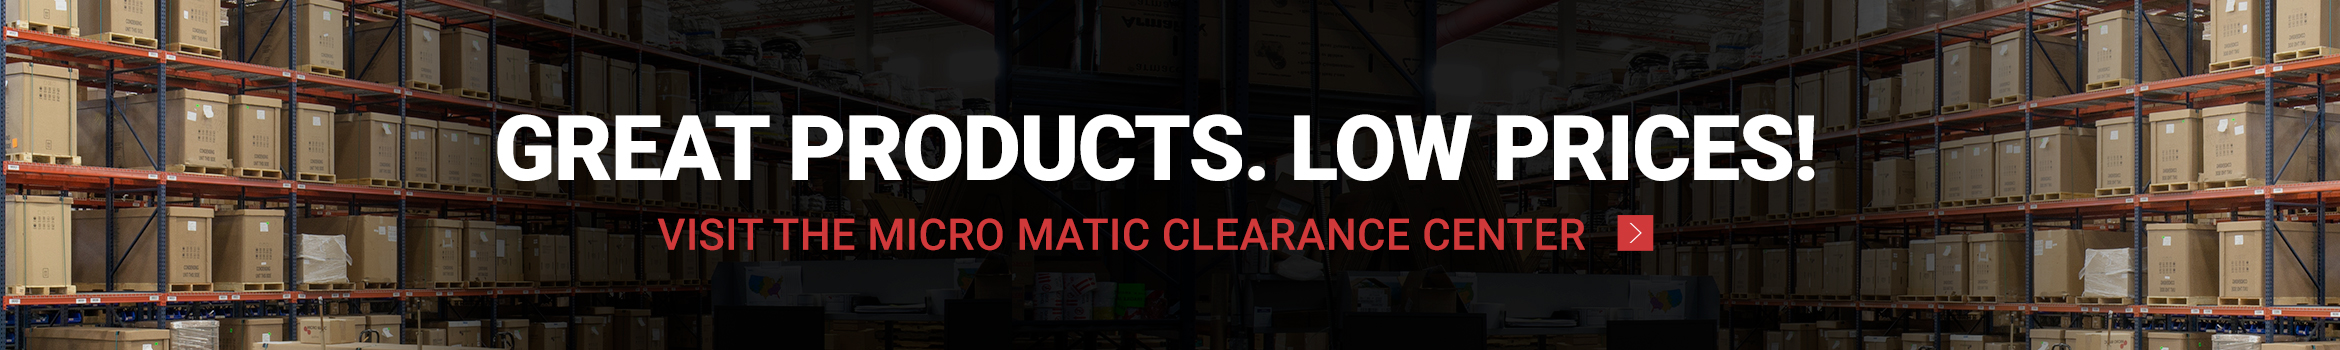 Micro Matic Clearance Center